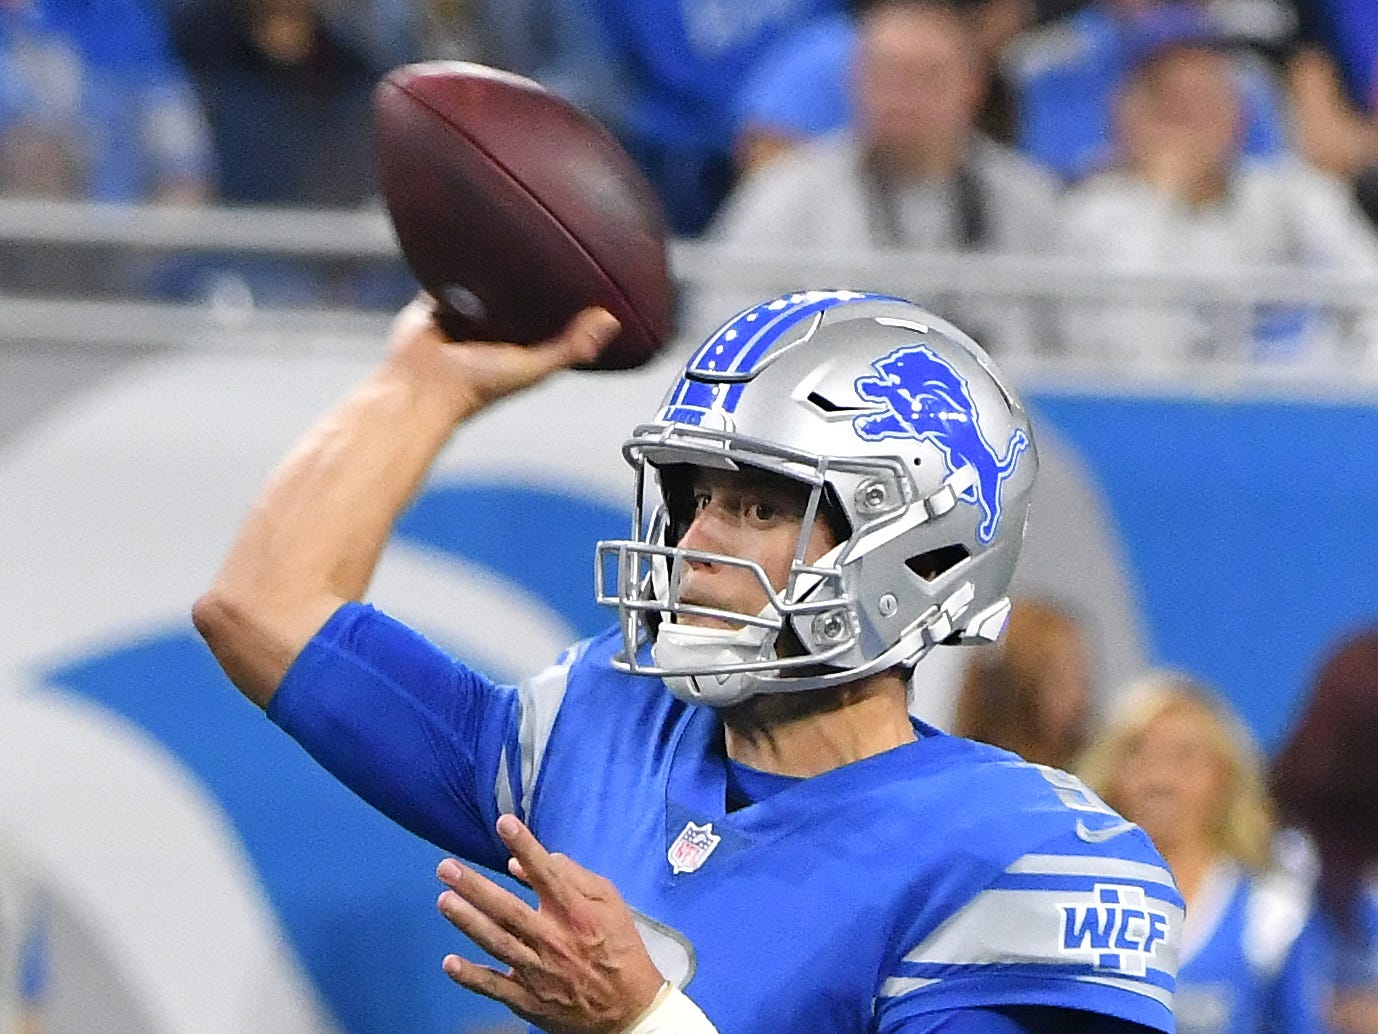 Lions quarterback Matthew Stafford throws in the fourth quarter.